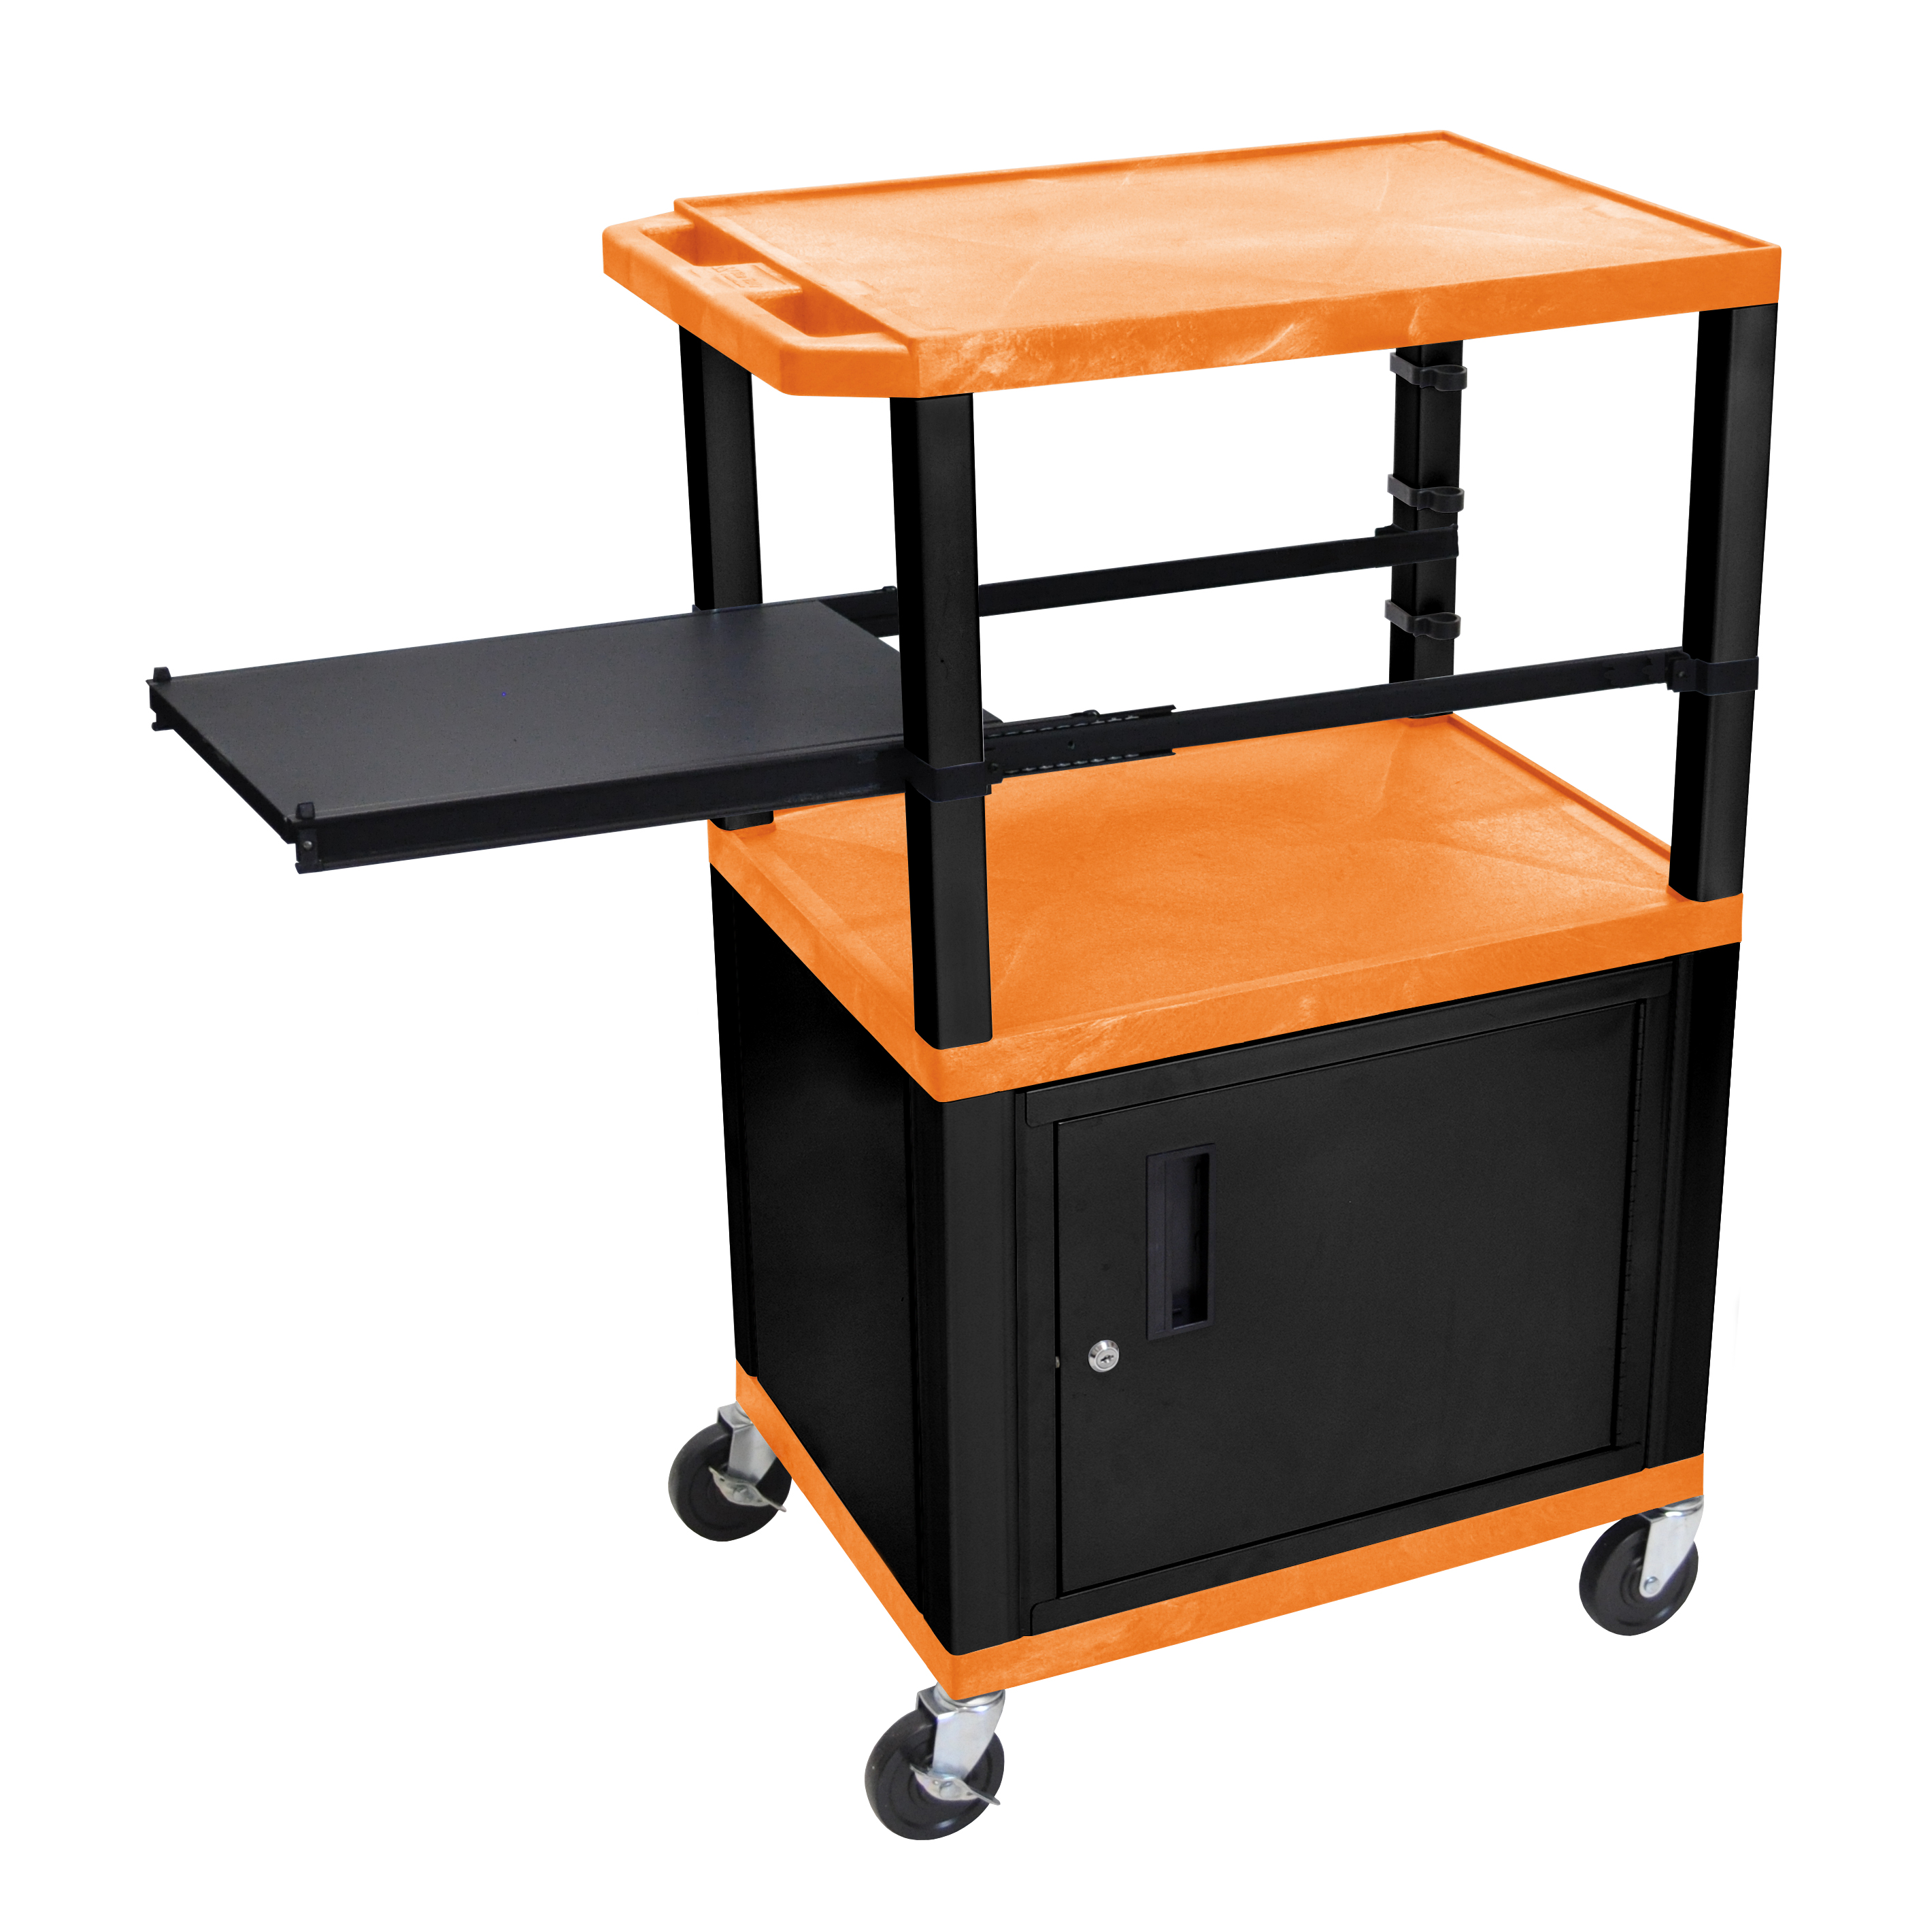 H WILSON WTPSP42ORC2E-B Presentation Station, 3-Shelf with Black Legs, Cabinet and Side Pull-Out Shelf, Tuffy, Orange